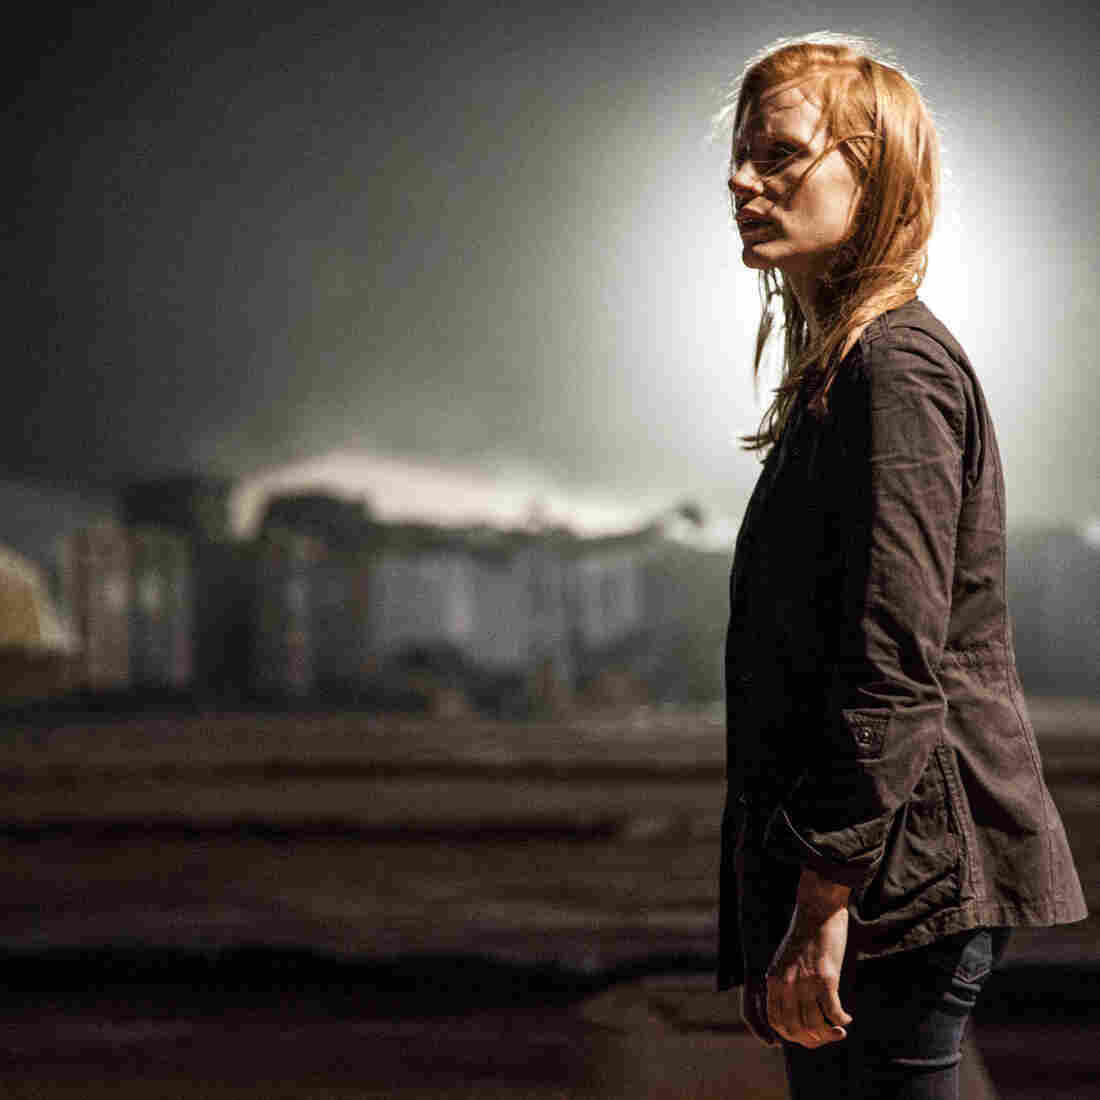 Stationed in a covert base overseas, Maya (Jessica Chastain) is a member of the elite team of spies and military operatives who secretly devote themselves to finding Osama bin Laden in Zero Dark Thirty.